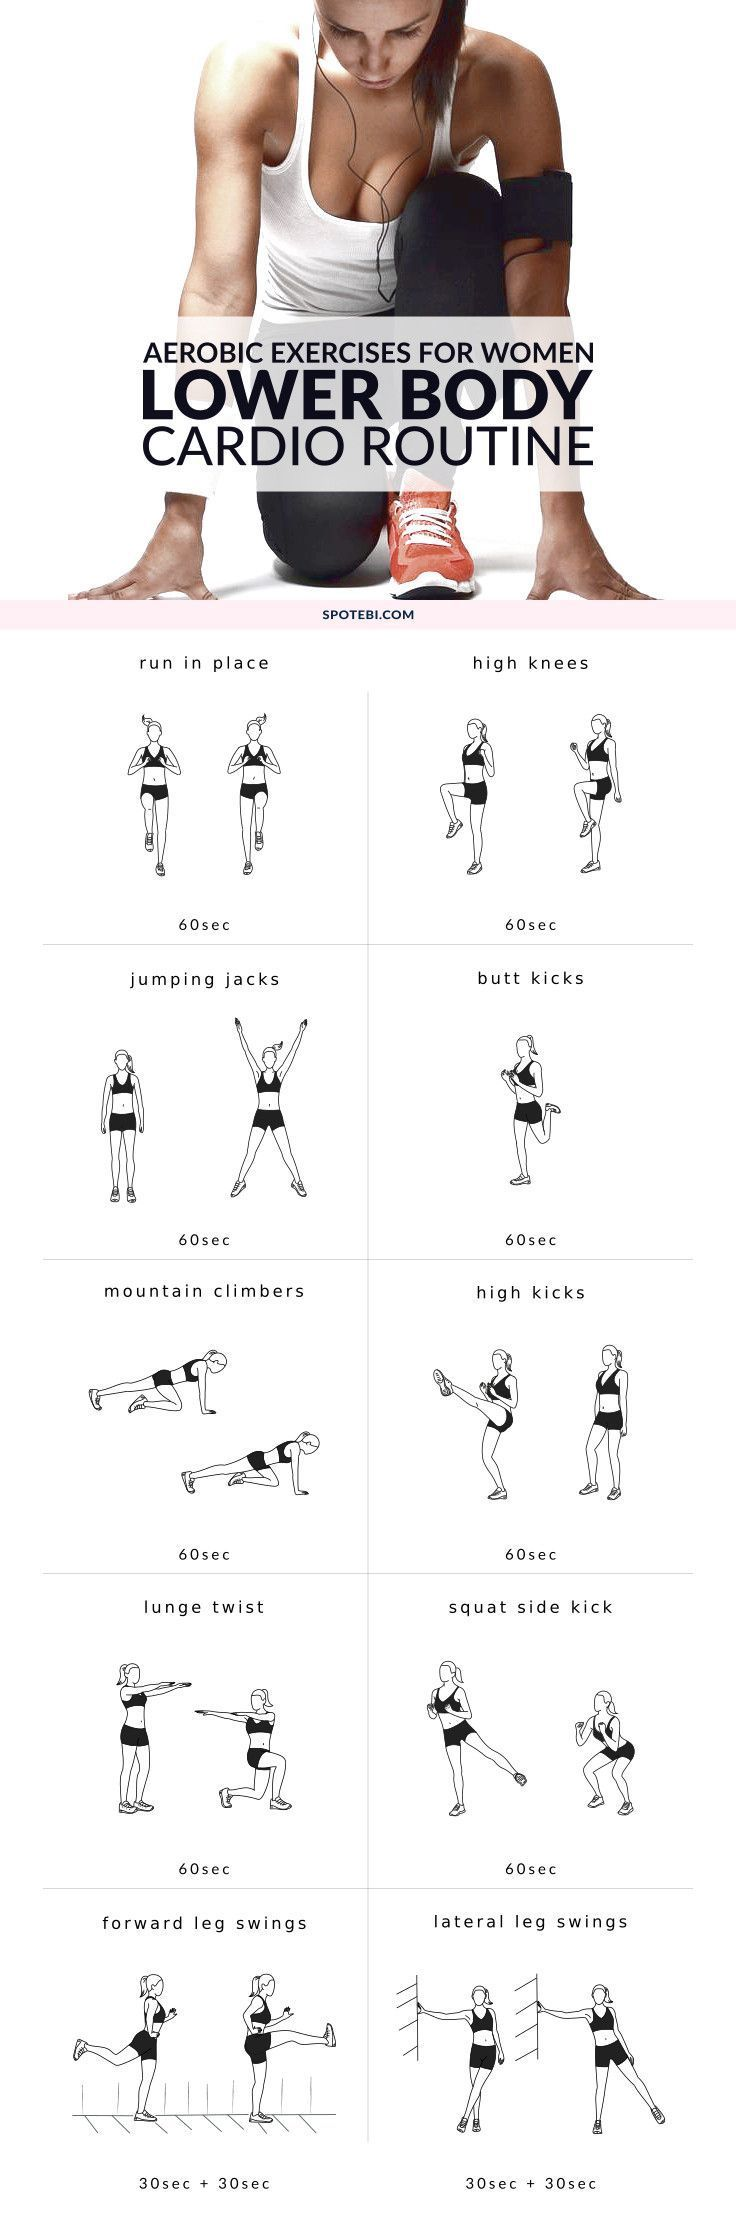 Get Ready For Your Lower Body Workout With This Set Of Warm Up Exercises An At Home Routine Instructions Calories Burned Music Playlist And Timer